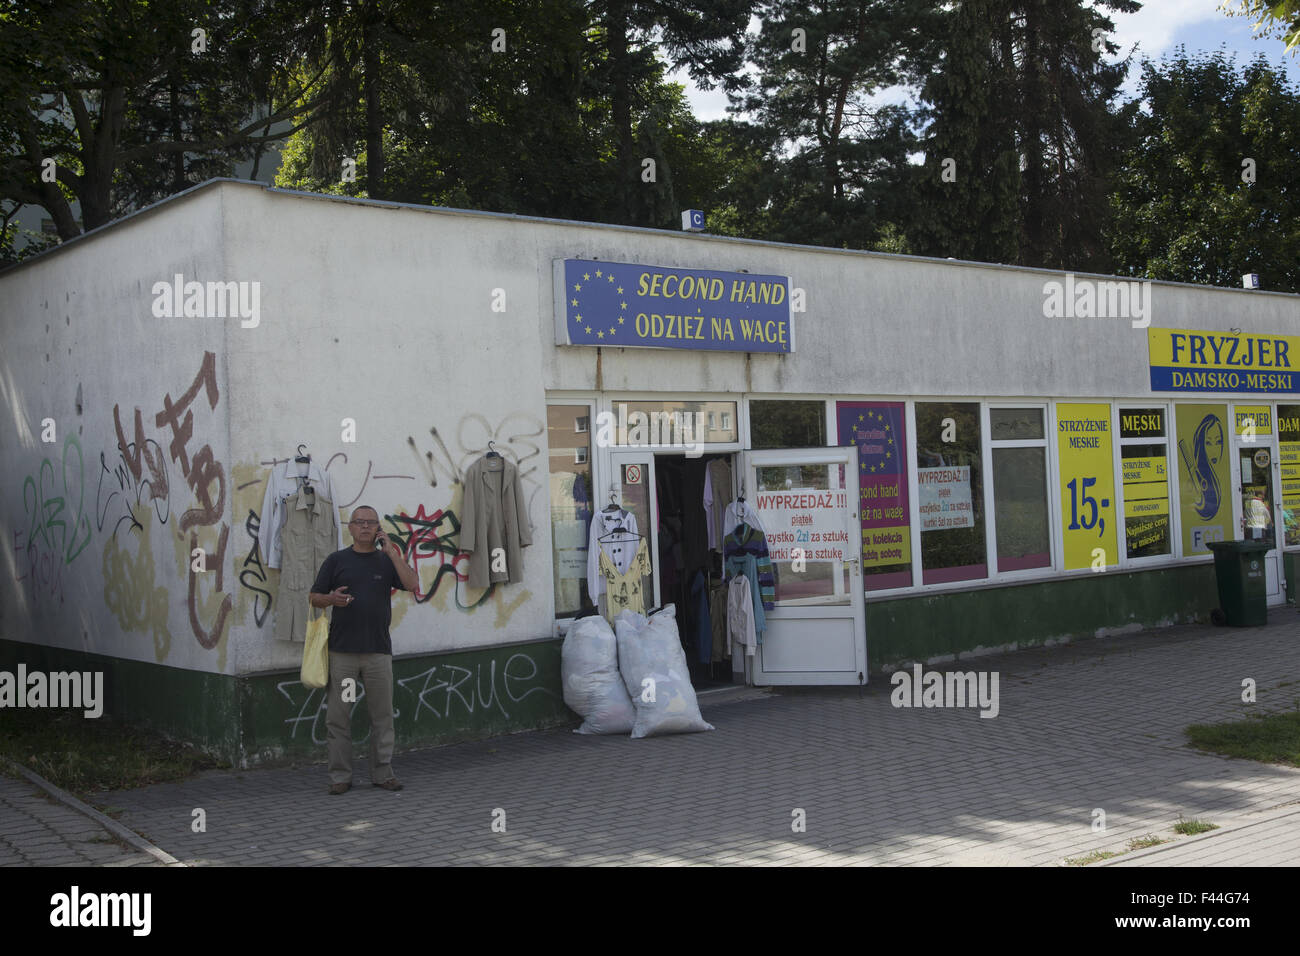 Second hand clothing shop in Zielona Gora, Poland. - Stock Image